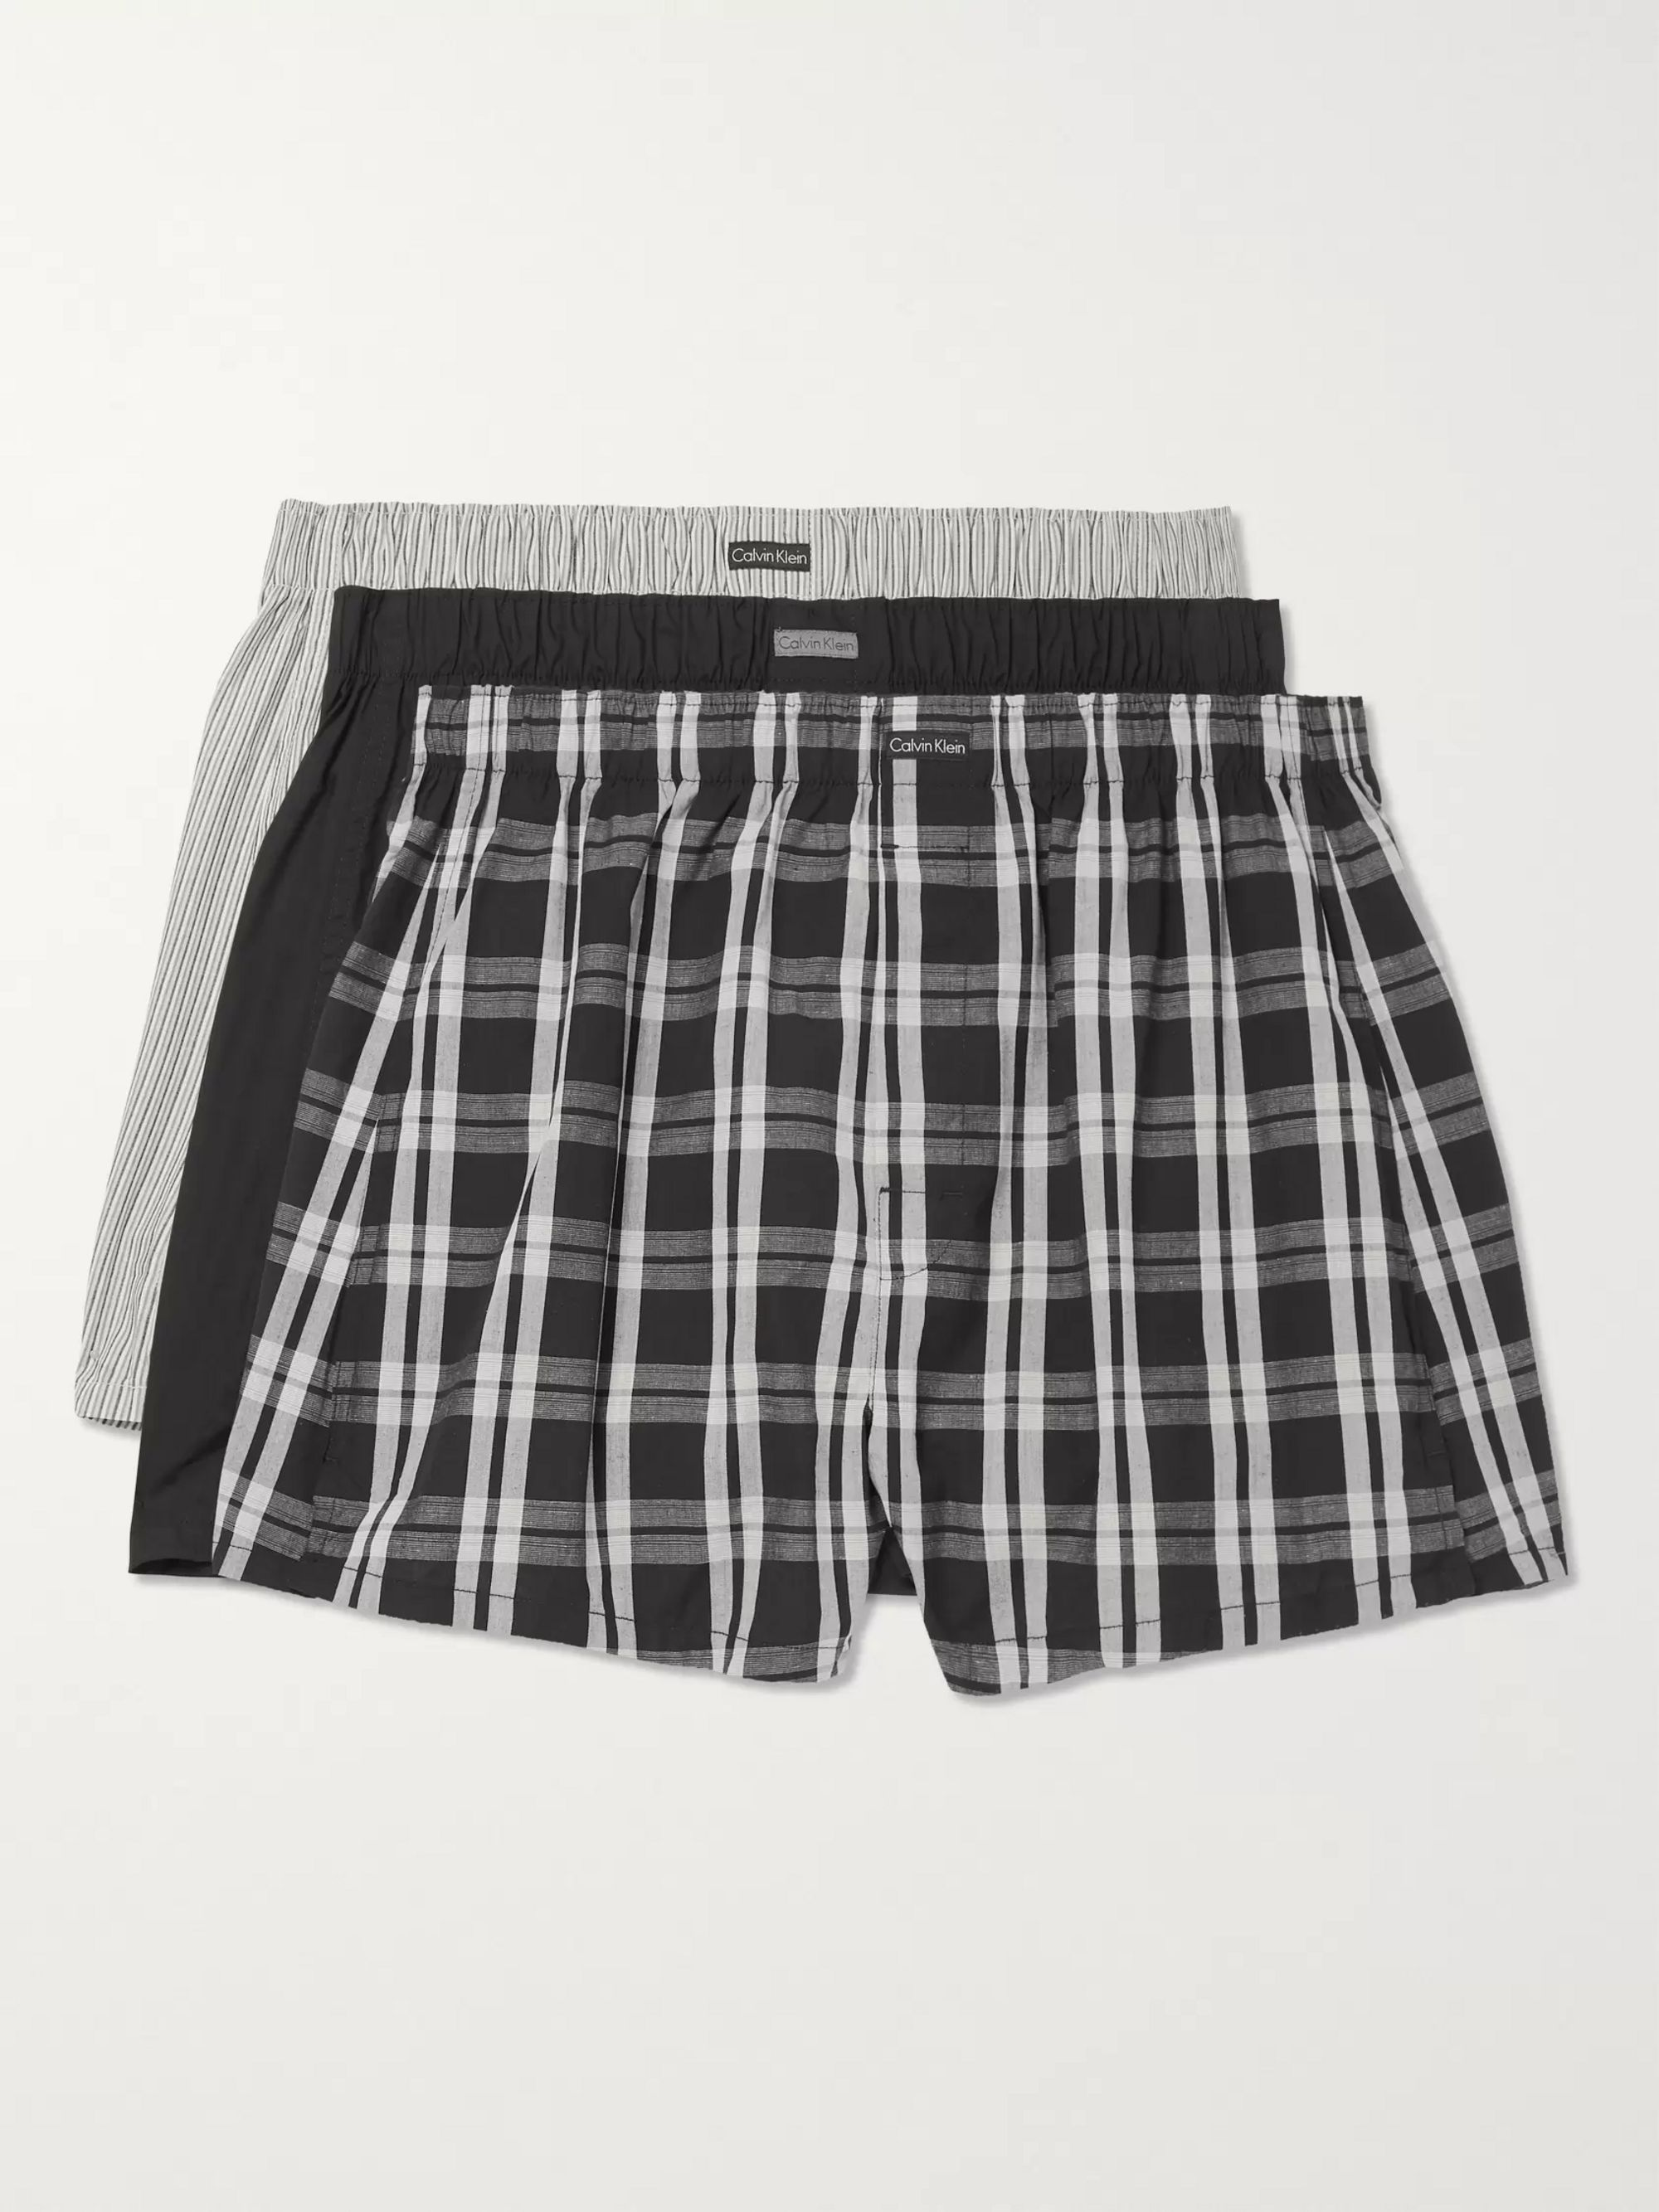 Calvin Klein Underwear Three-Pack Cotton-Blend Boxer Shorts